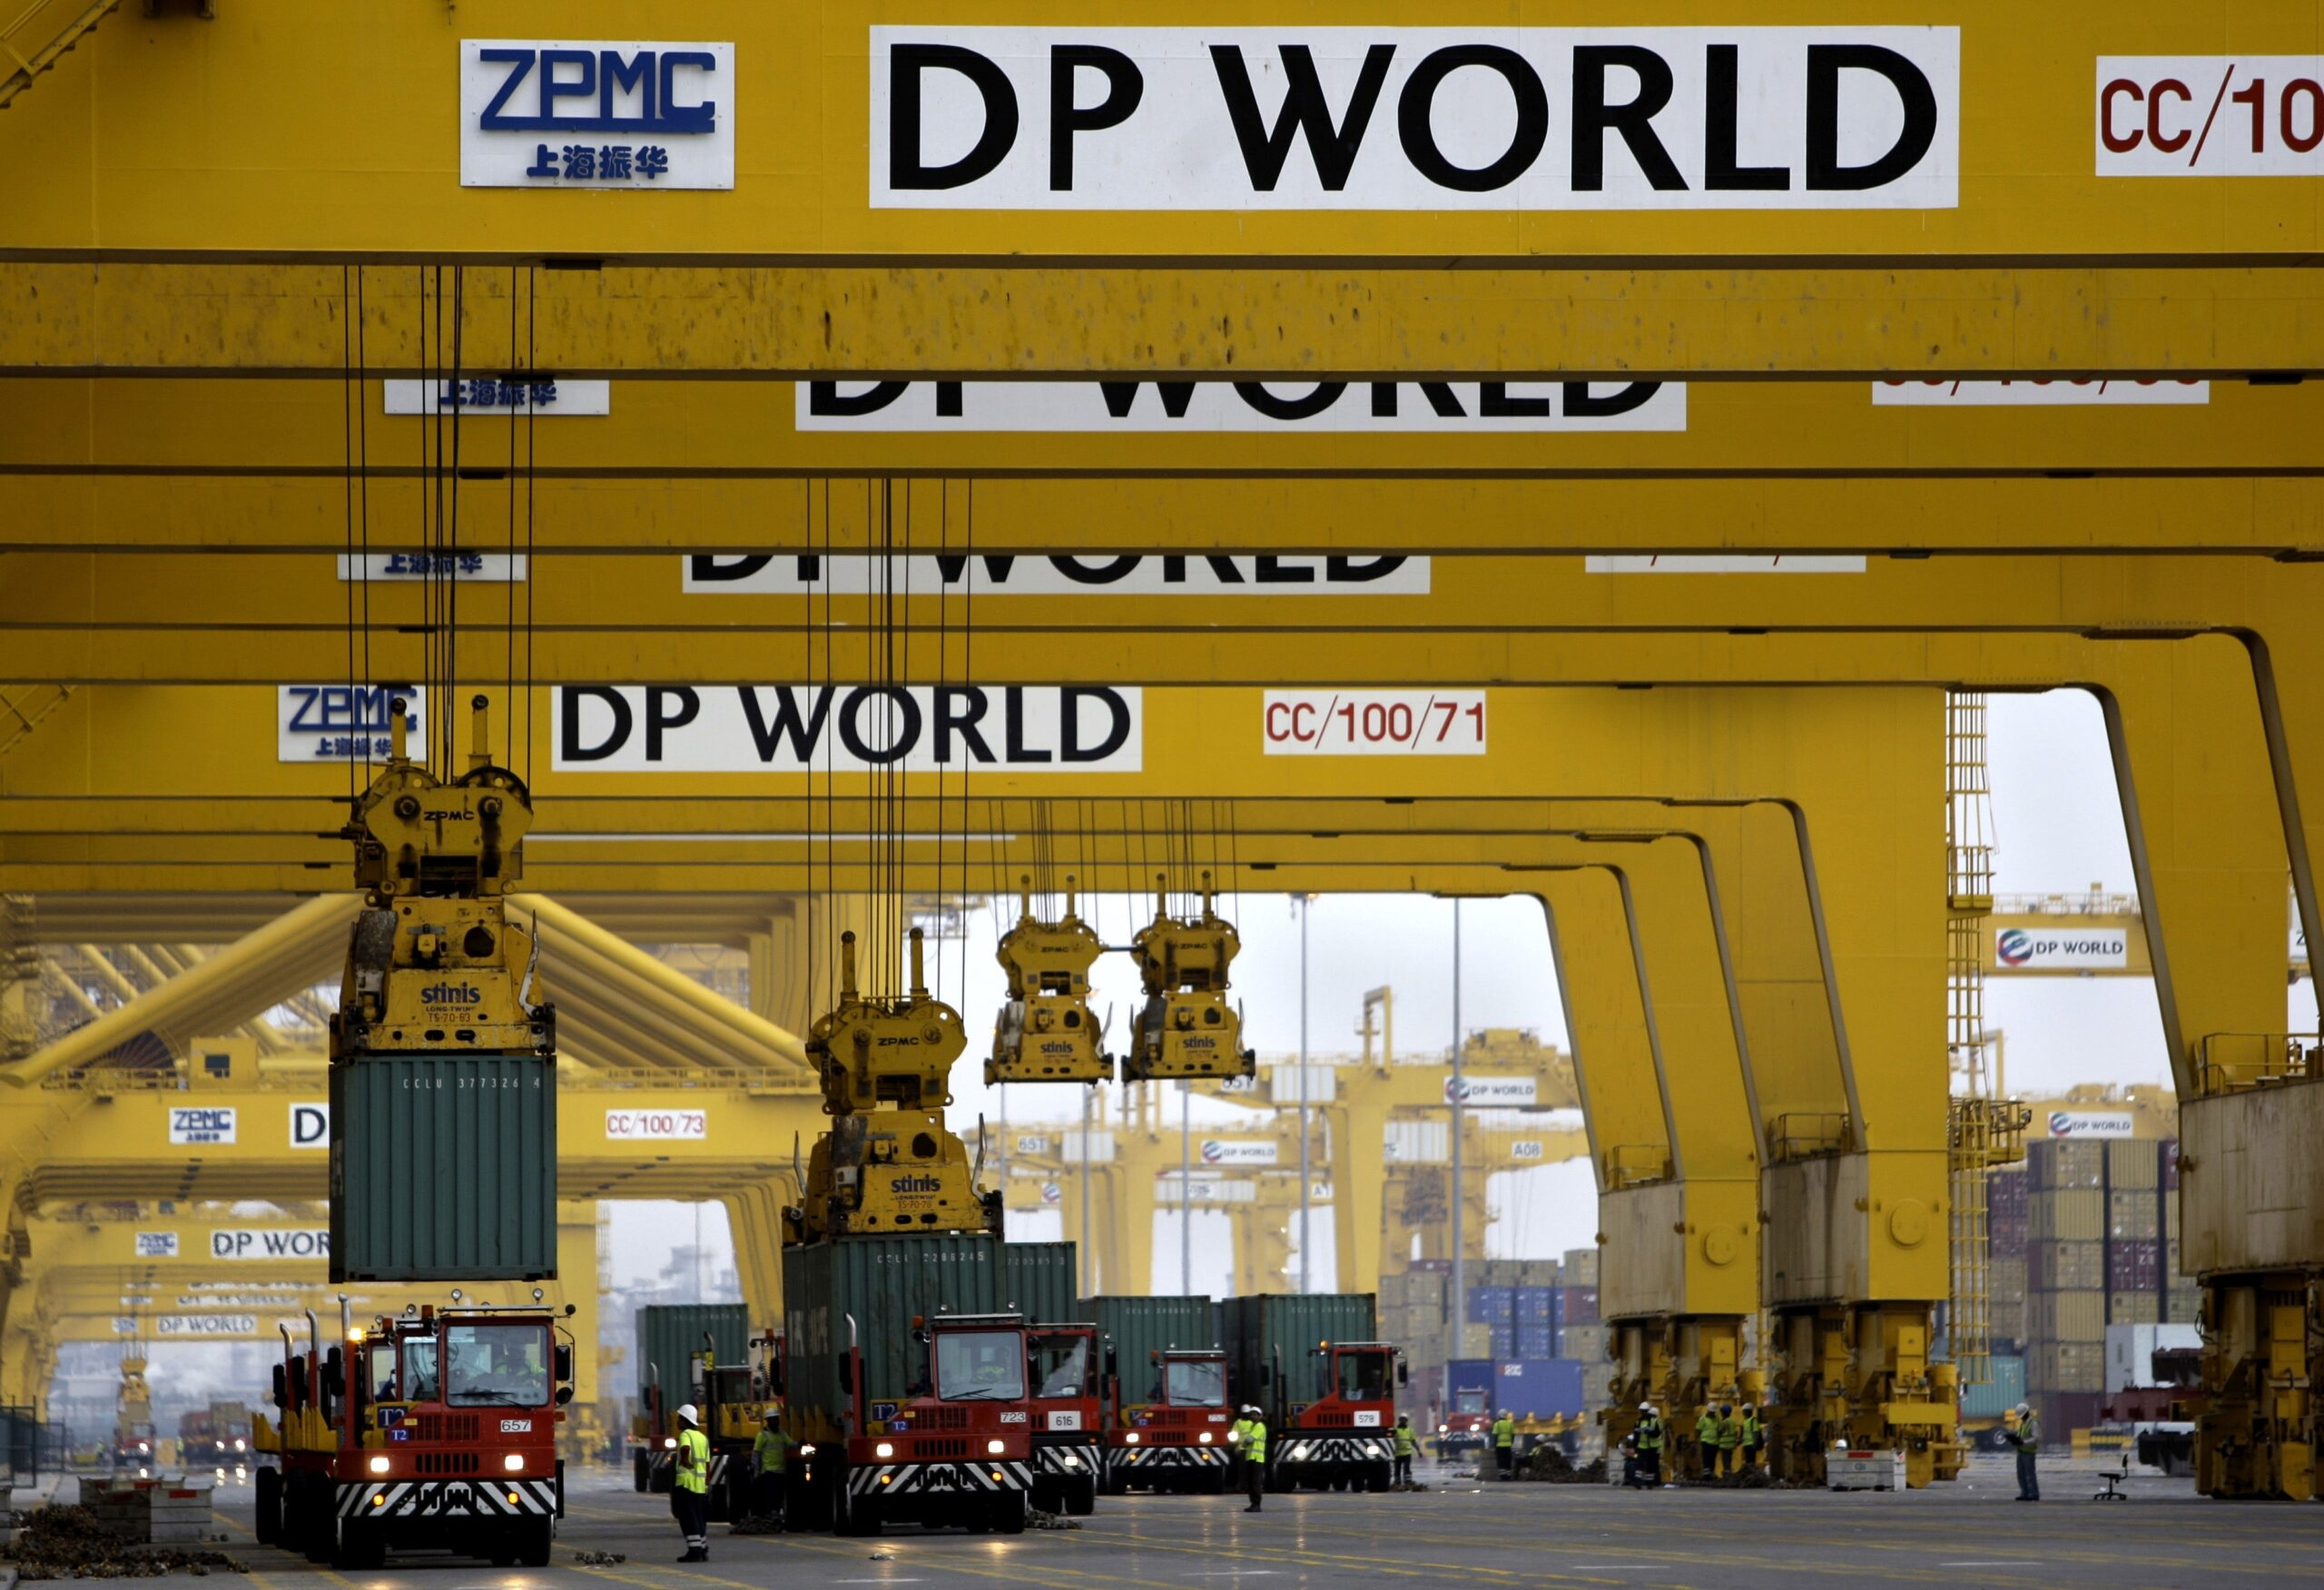 DP World announces volume growth with 3.1% in Q3 2020 1